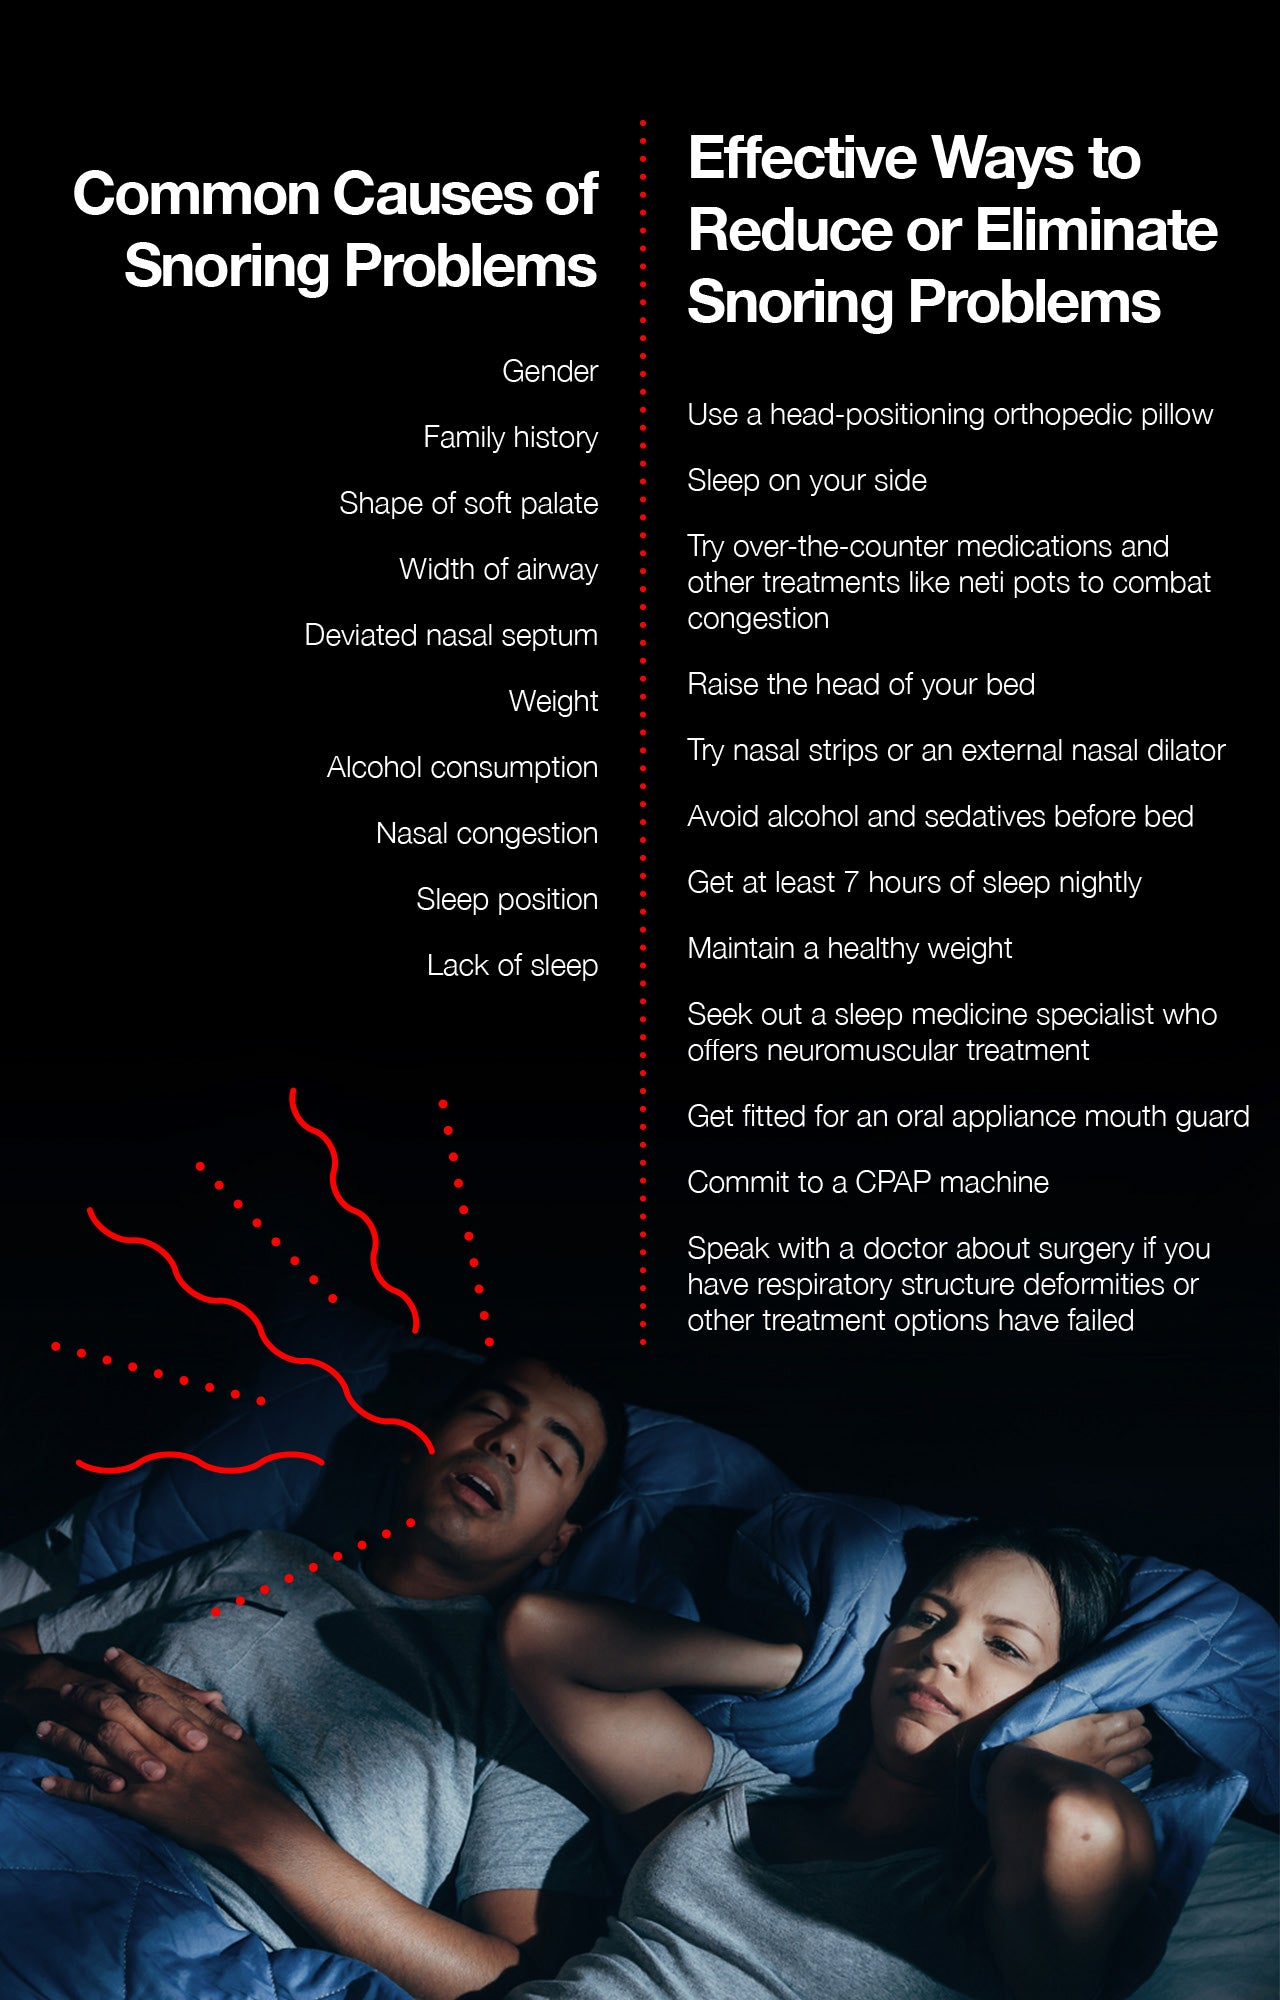 How to not snore as much